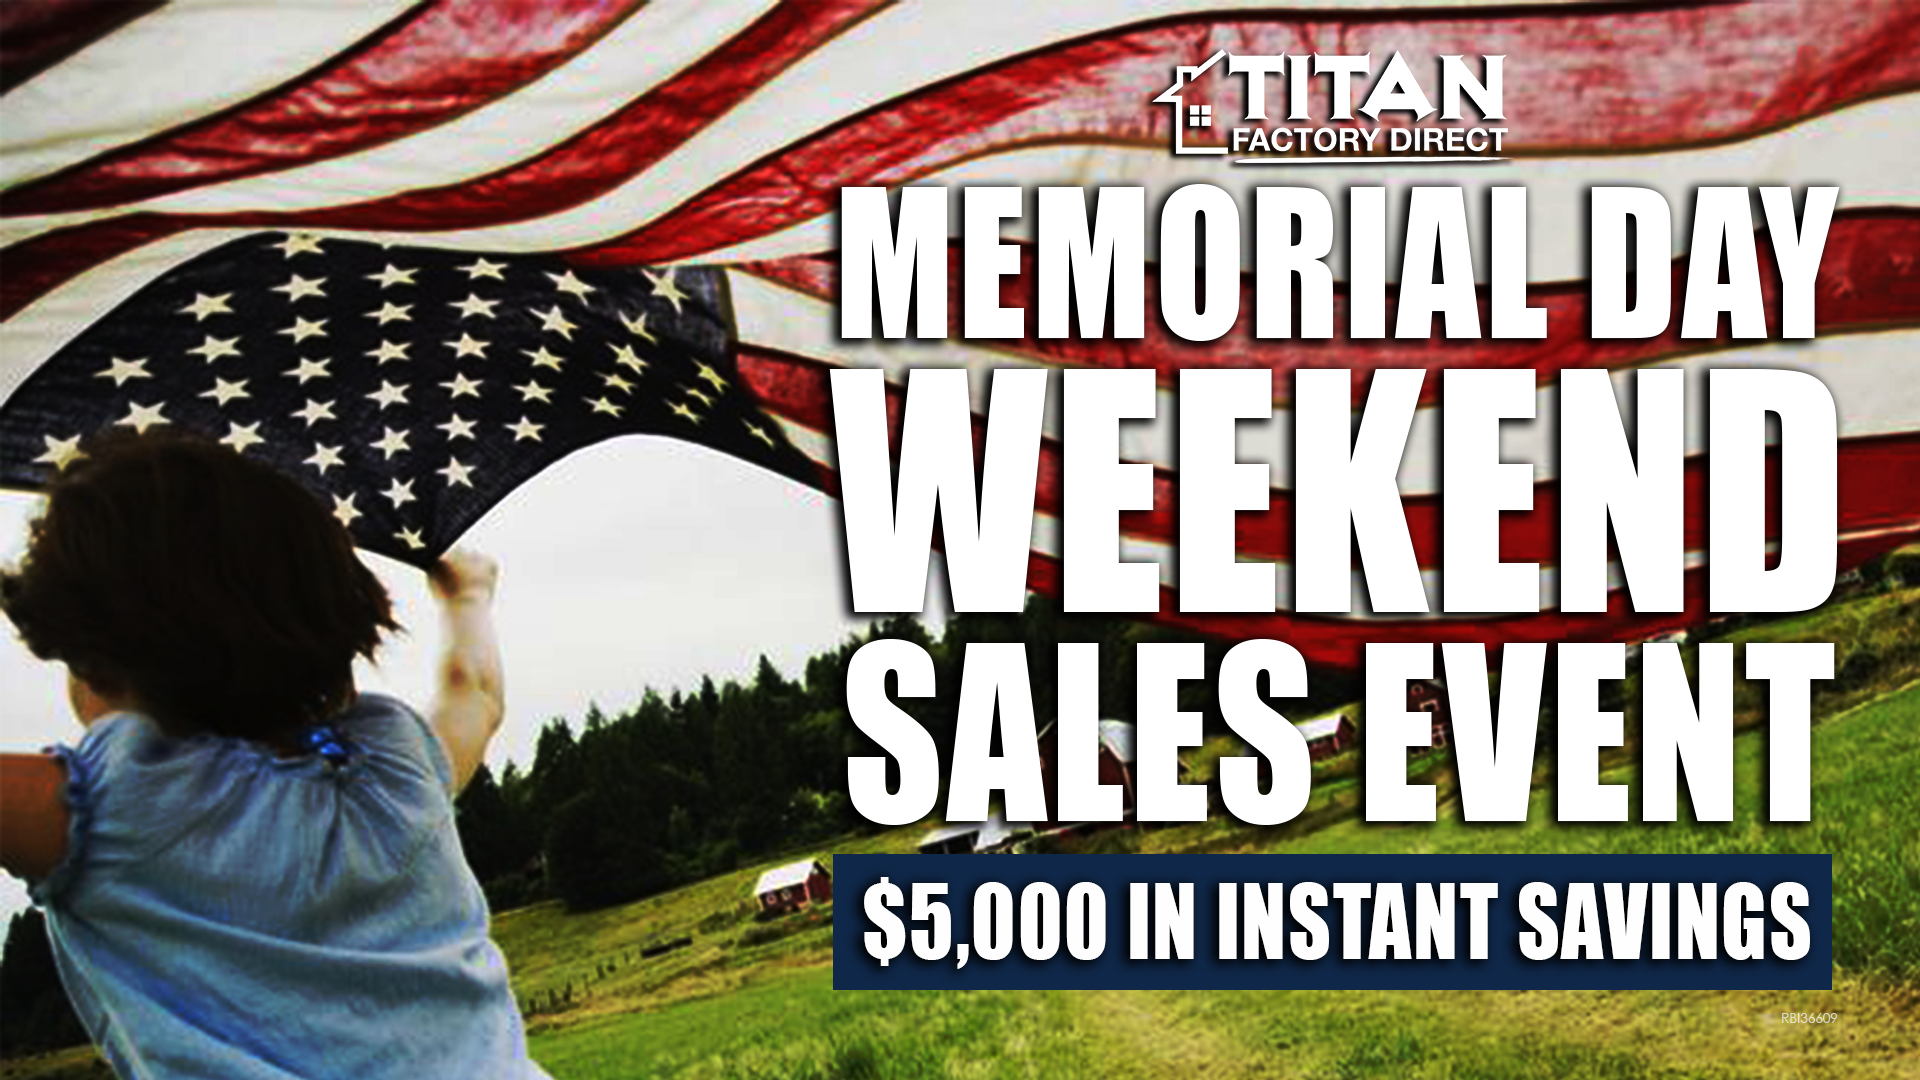 2018 Memorial-day-titan-deal_SLIDER_2.png